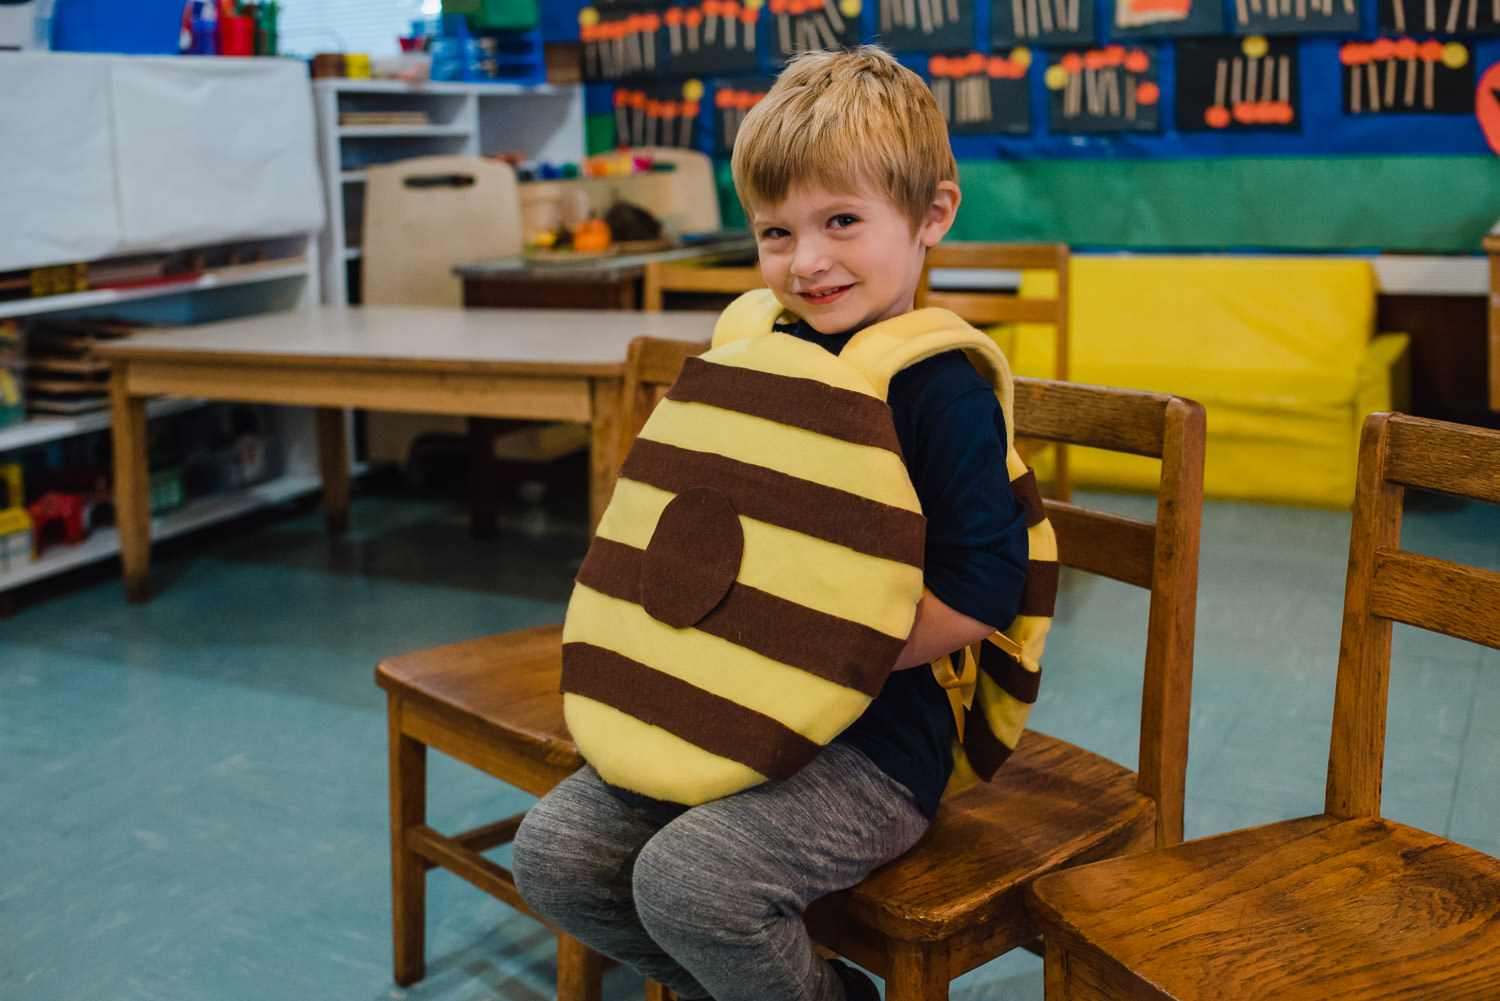 A little boy dresses as a fudge striped cookie for Halloween.